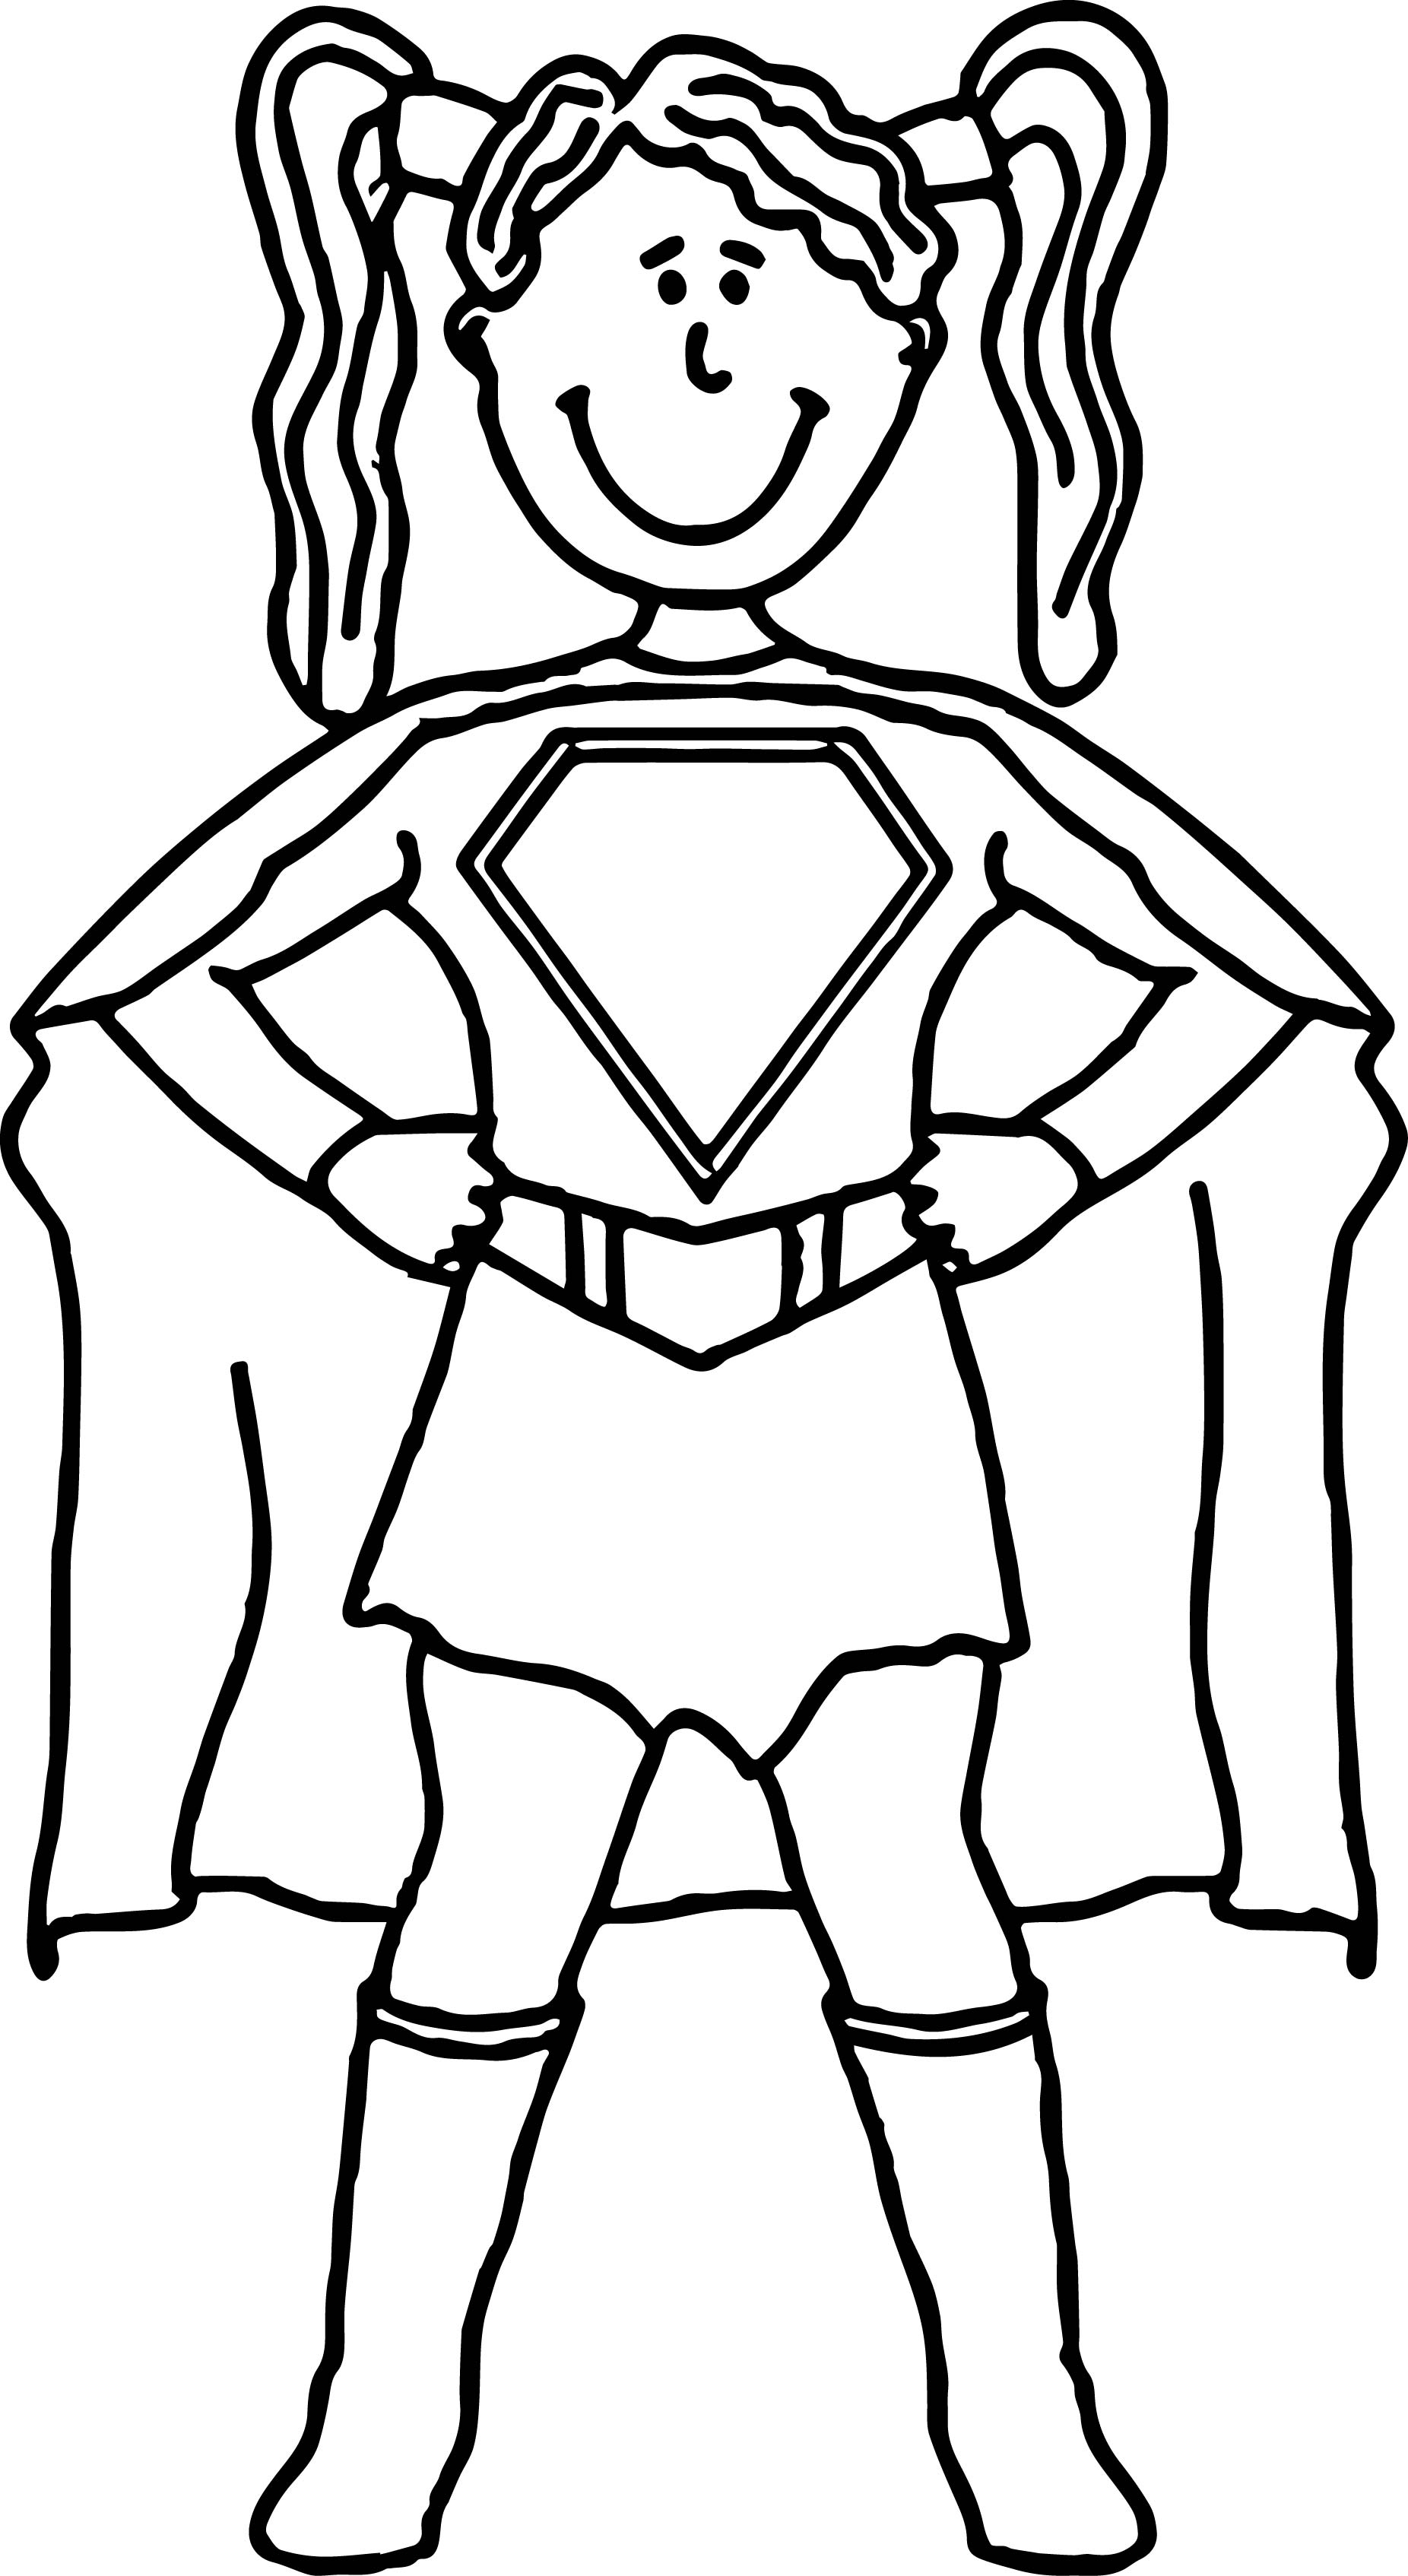 girl superhero coloring pages - black female superhero coloring pages sketch templates